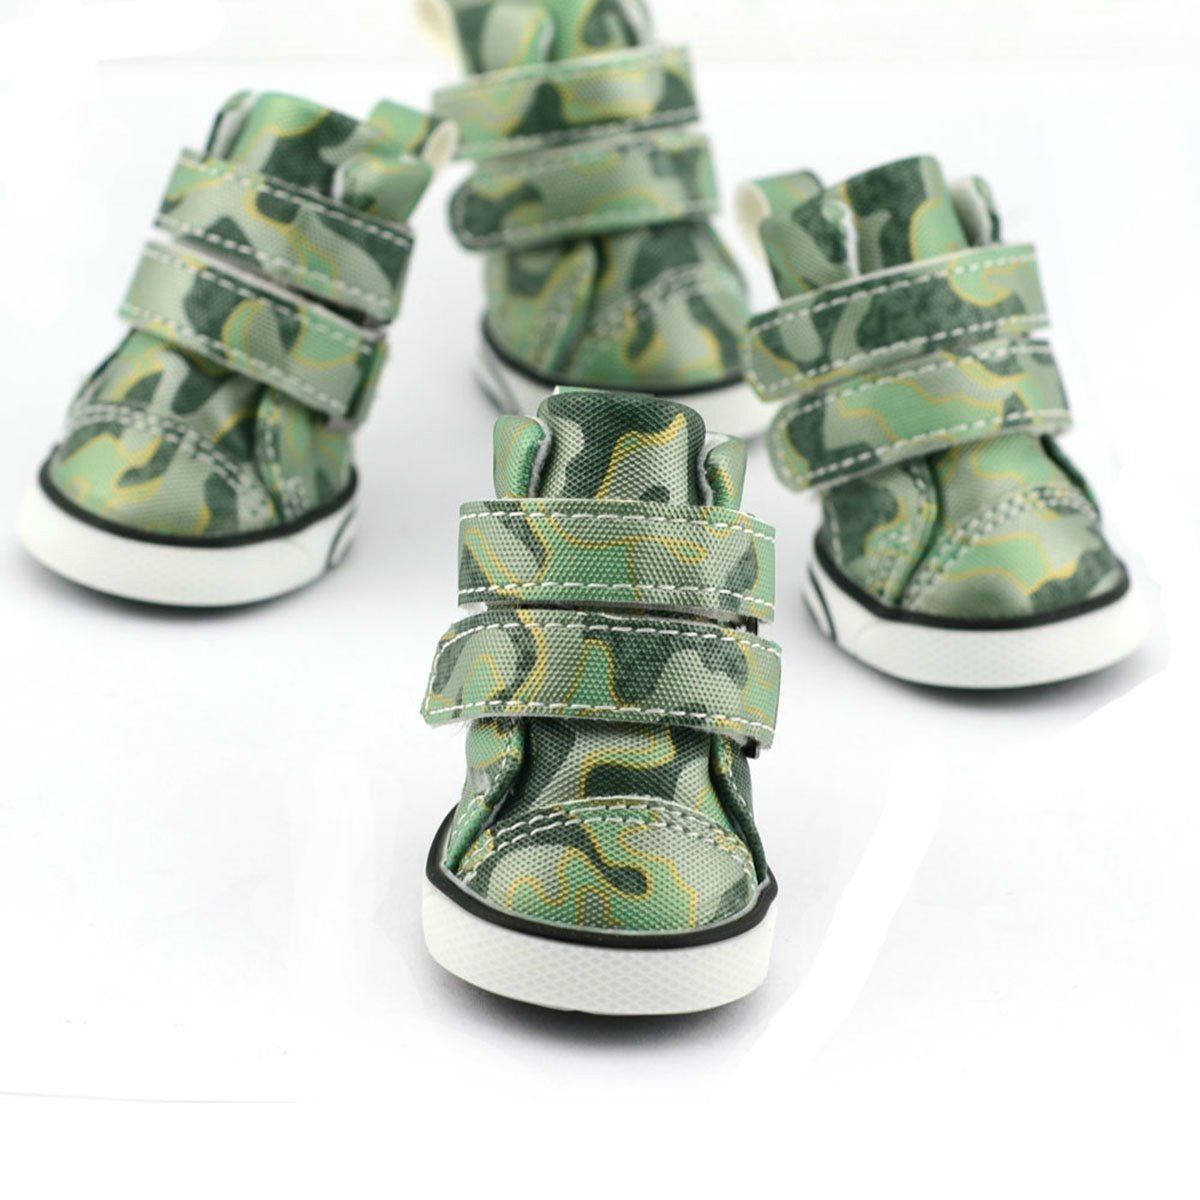 Puppy Dog Shoes Classic Camouflage Small Dog Boots